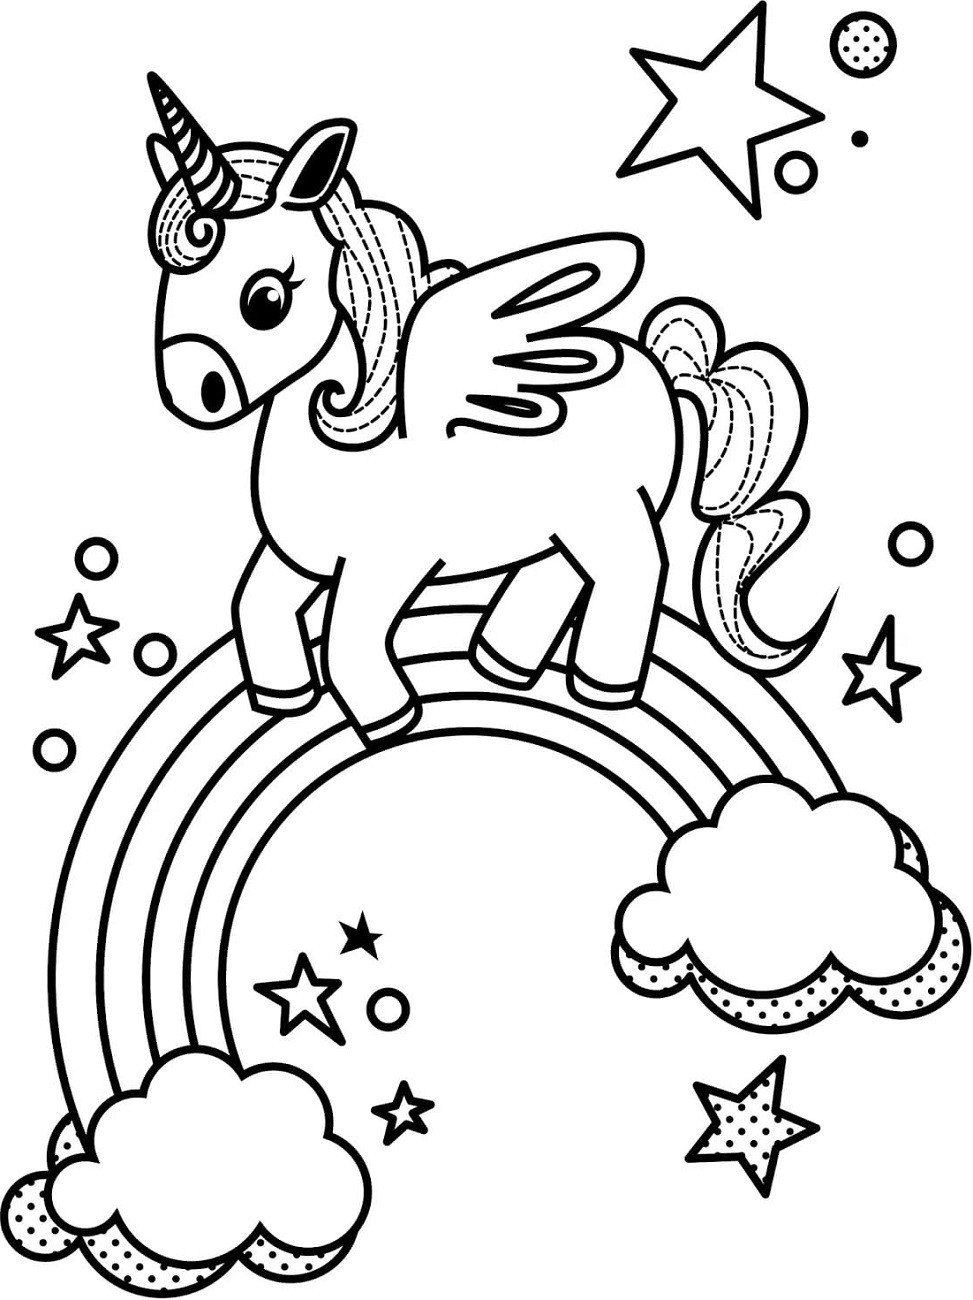 Coloring Pages Of Rainbows Little Unicorn and Rainbow